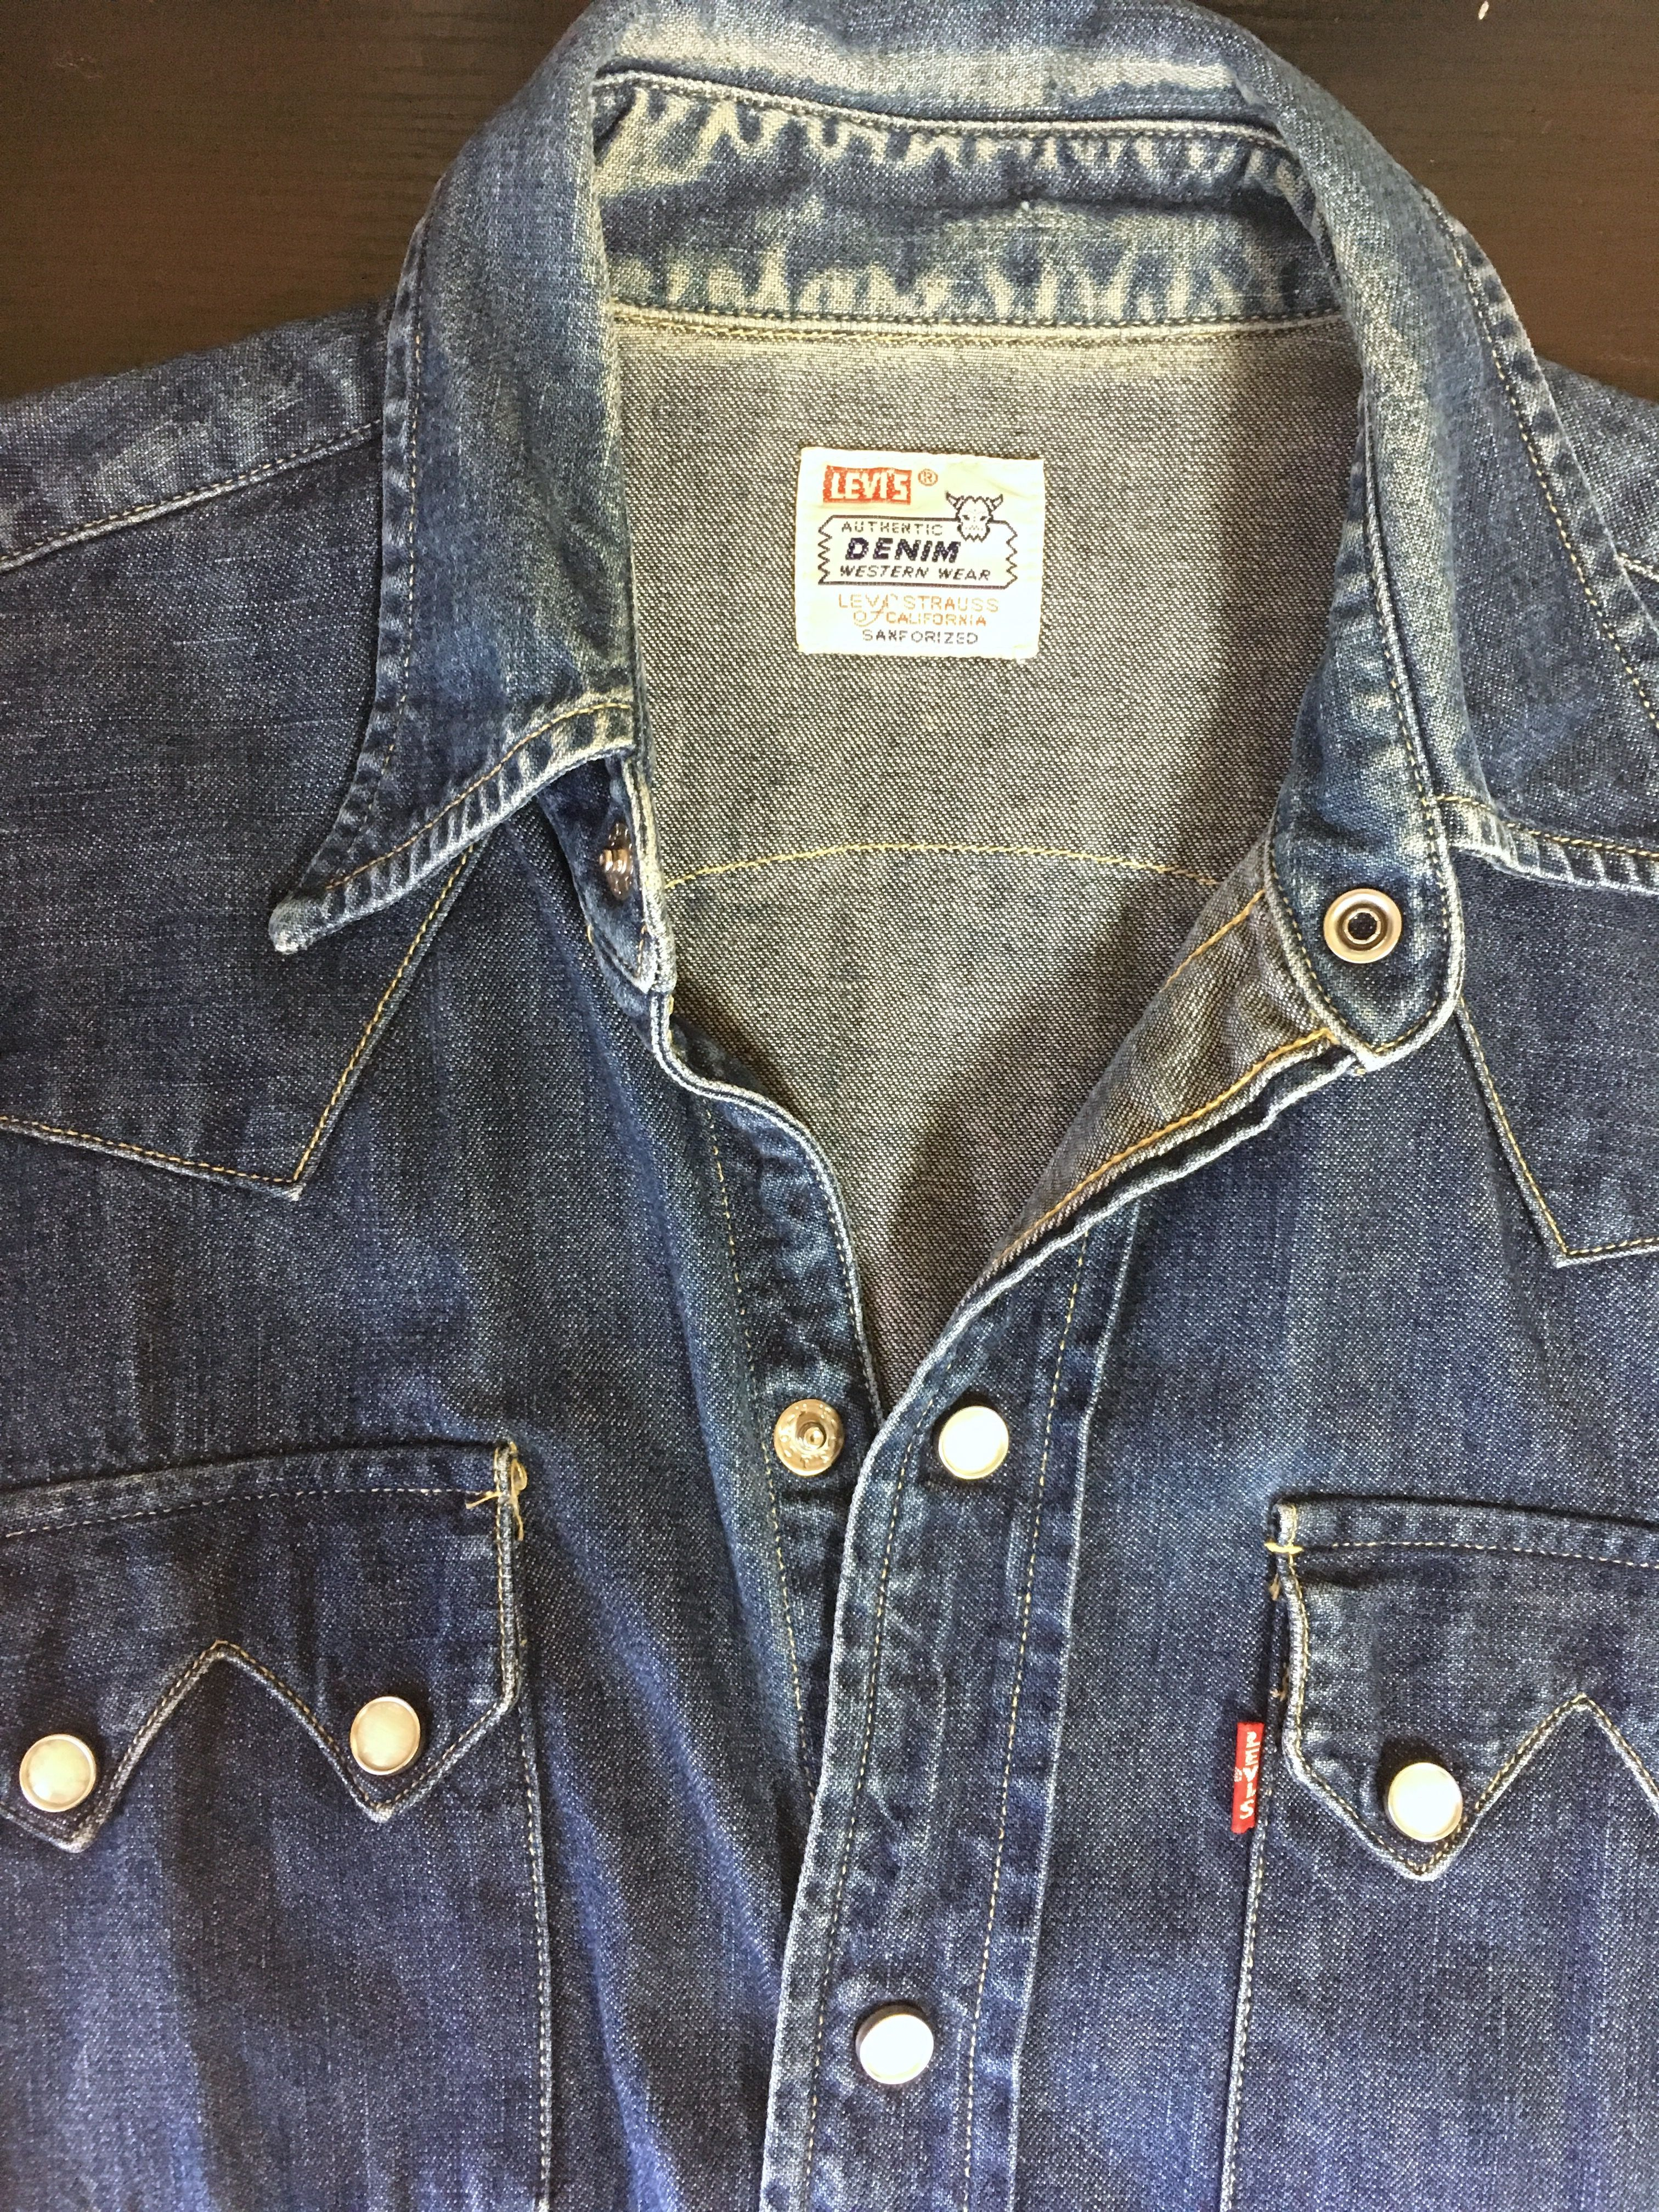 74d331a39a1 Pin by Ezra James Vintage on Junk in 2019